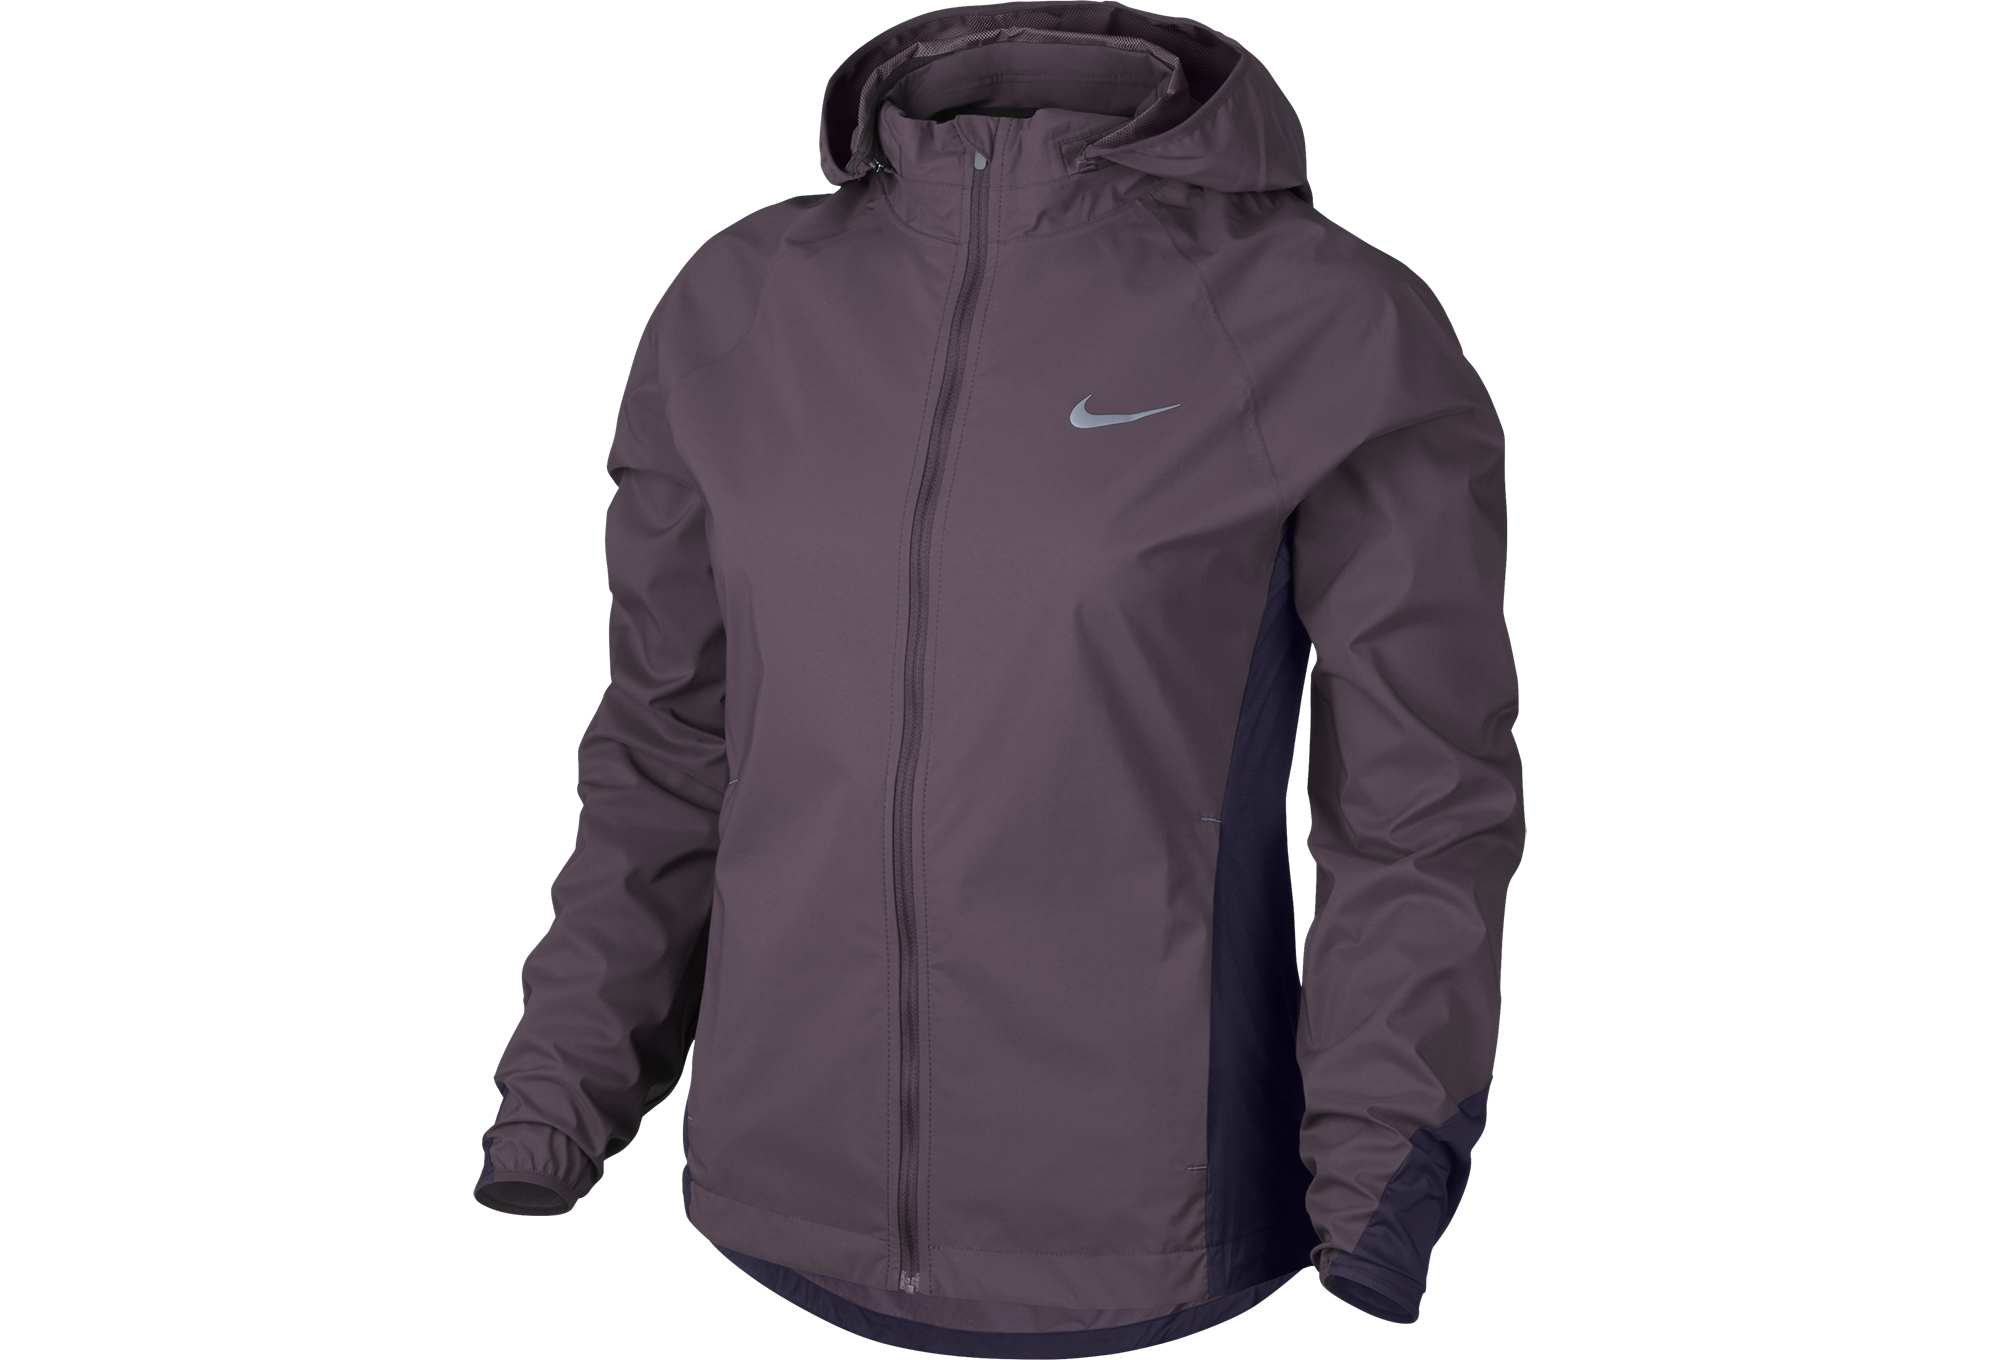 99f5d6222558 NIKE SHIELD Women Jacket Pink Purple